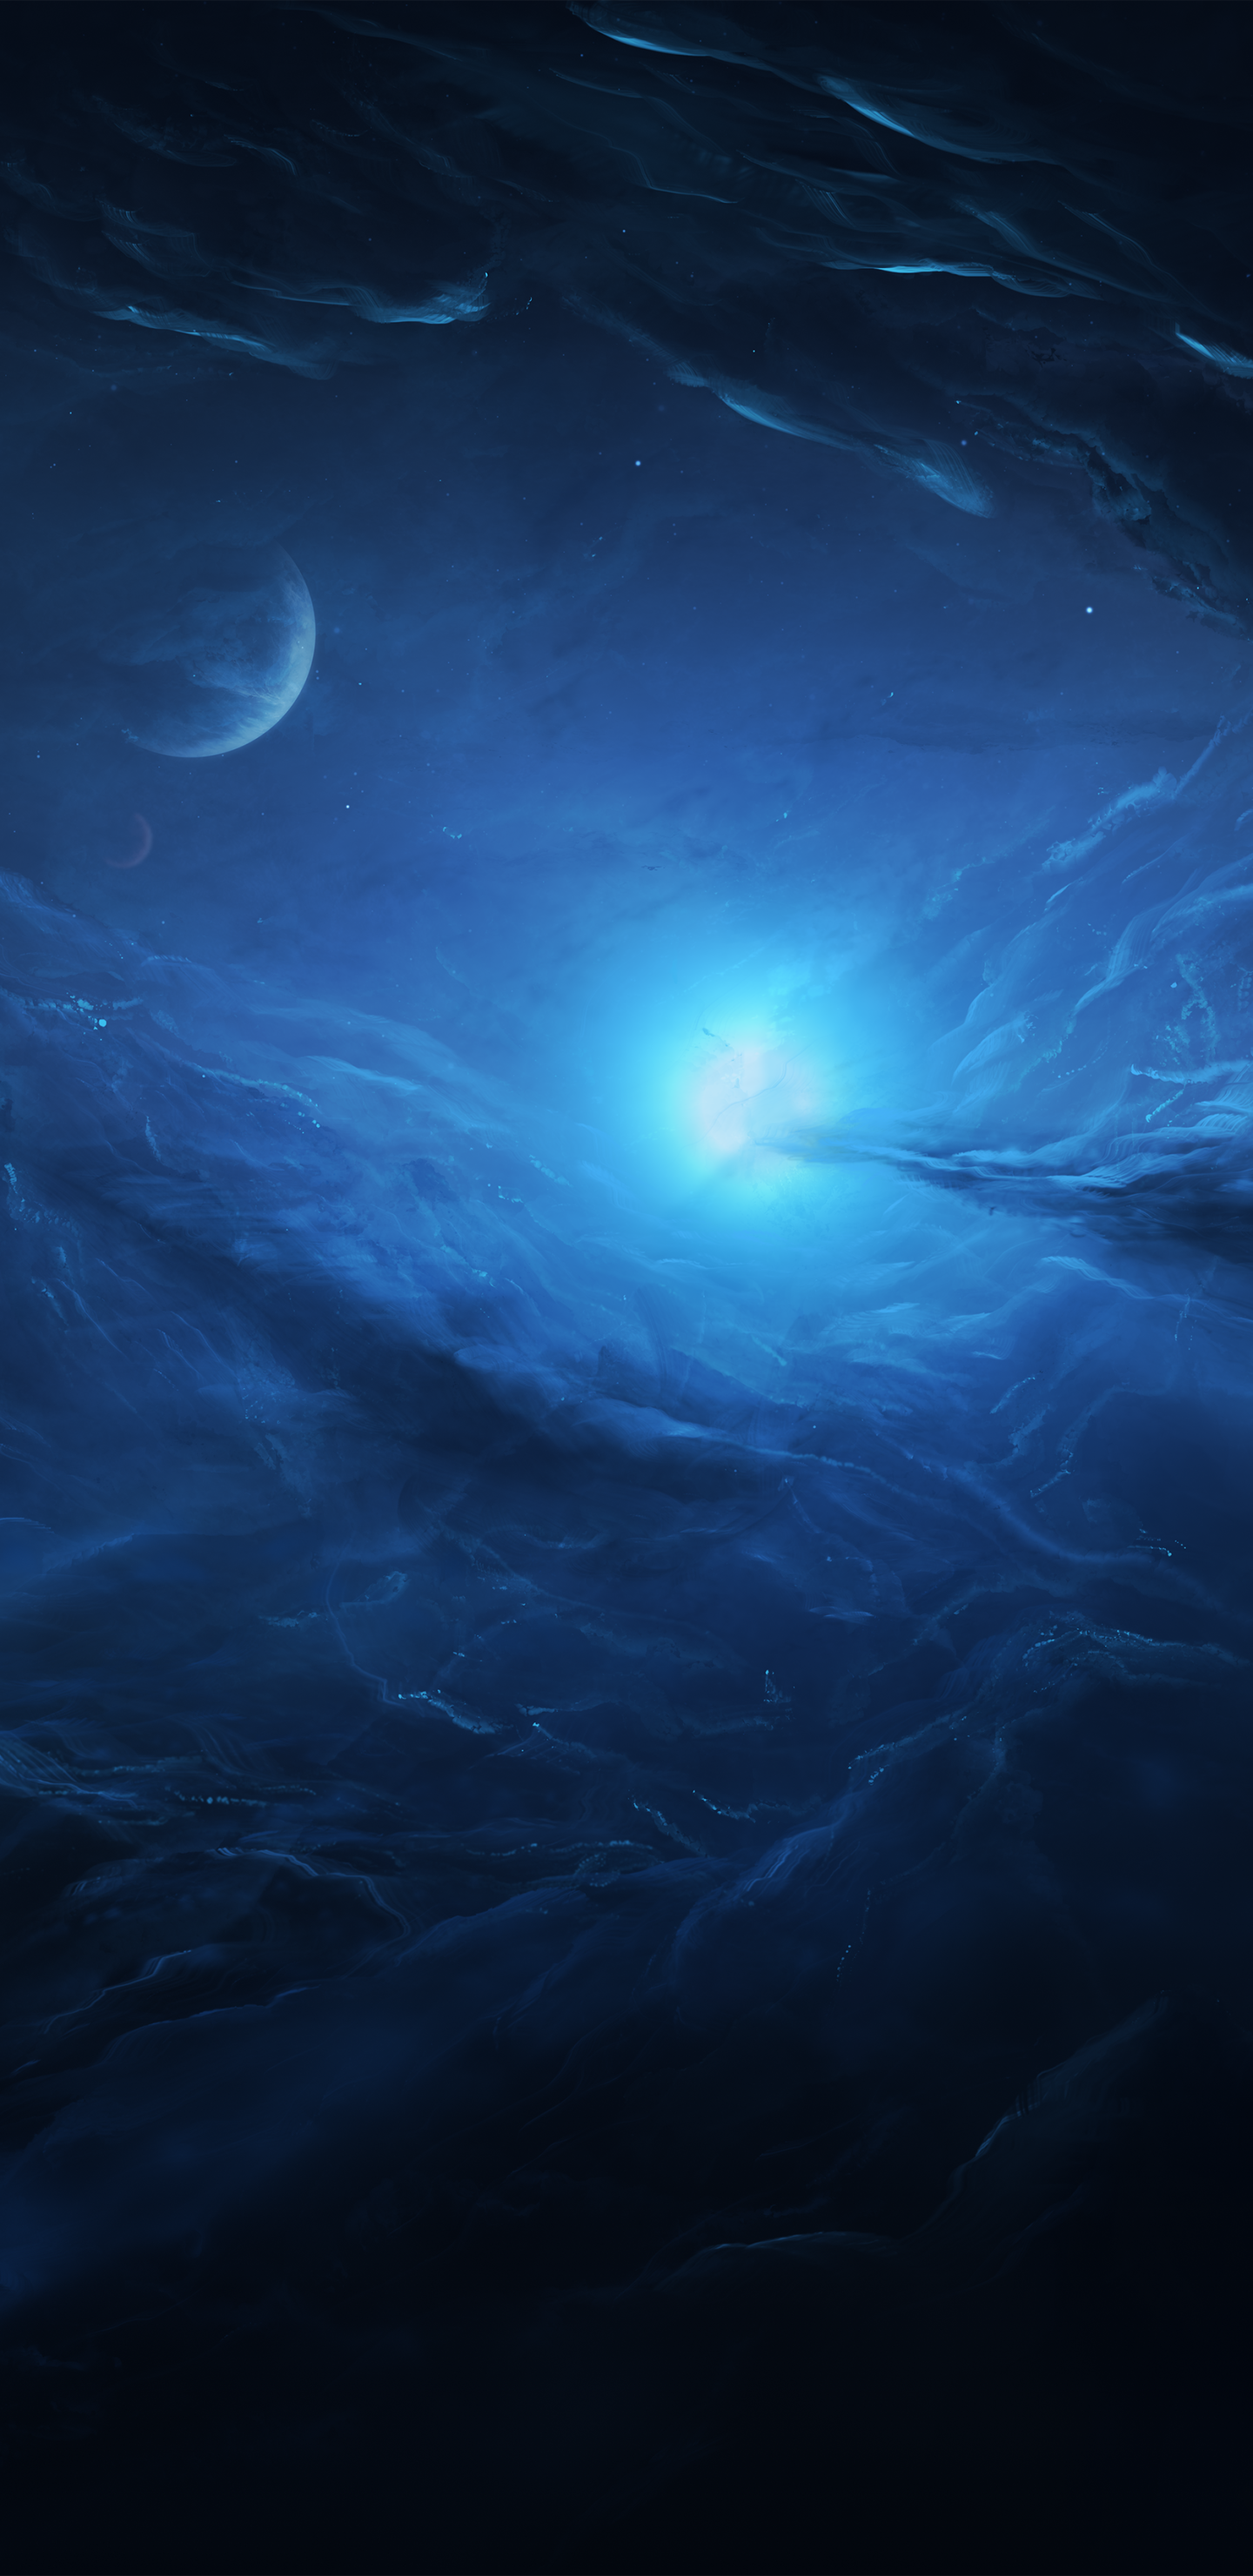 Sci Fi Planet 1440x2960 Wallpaper Id 728087 Mobile Abyss